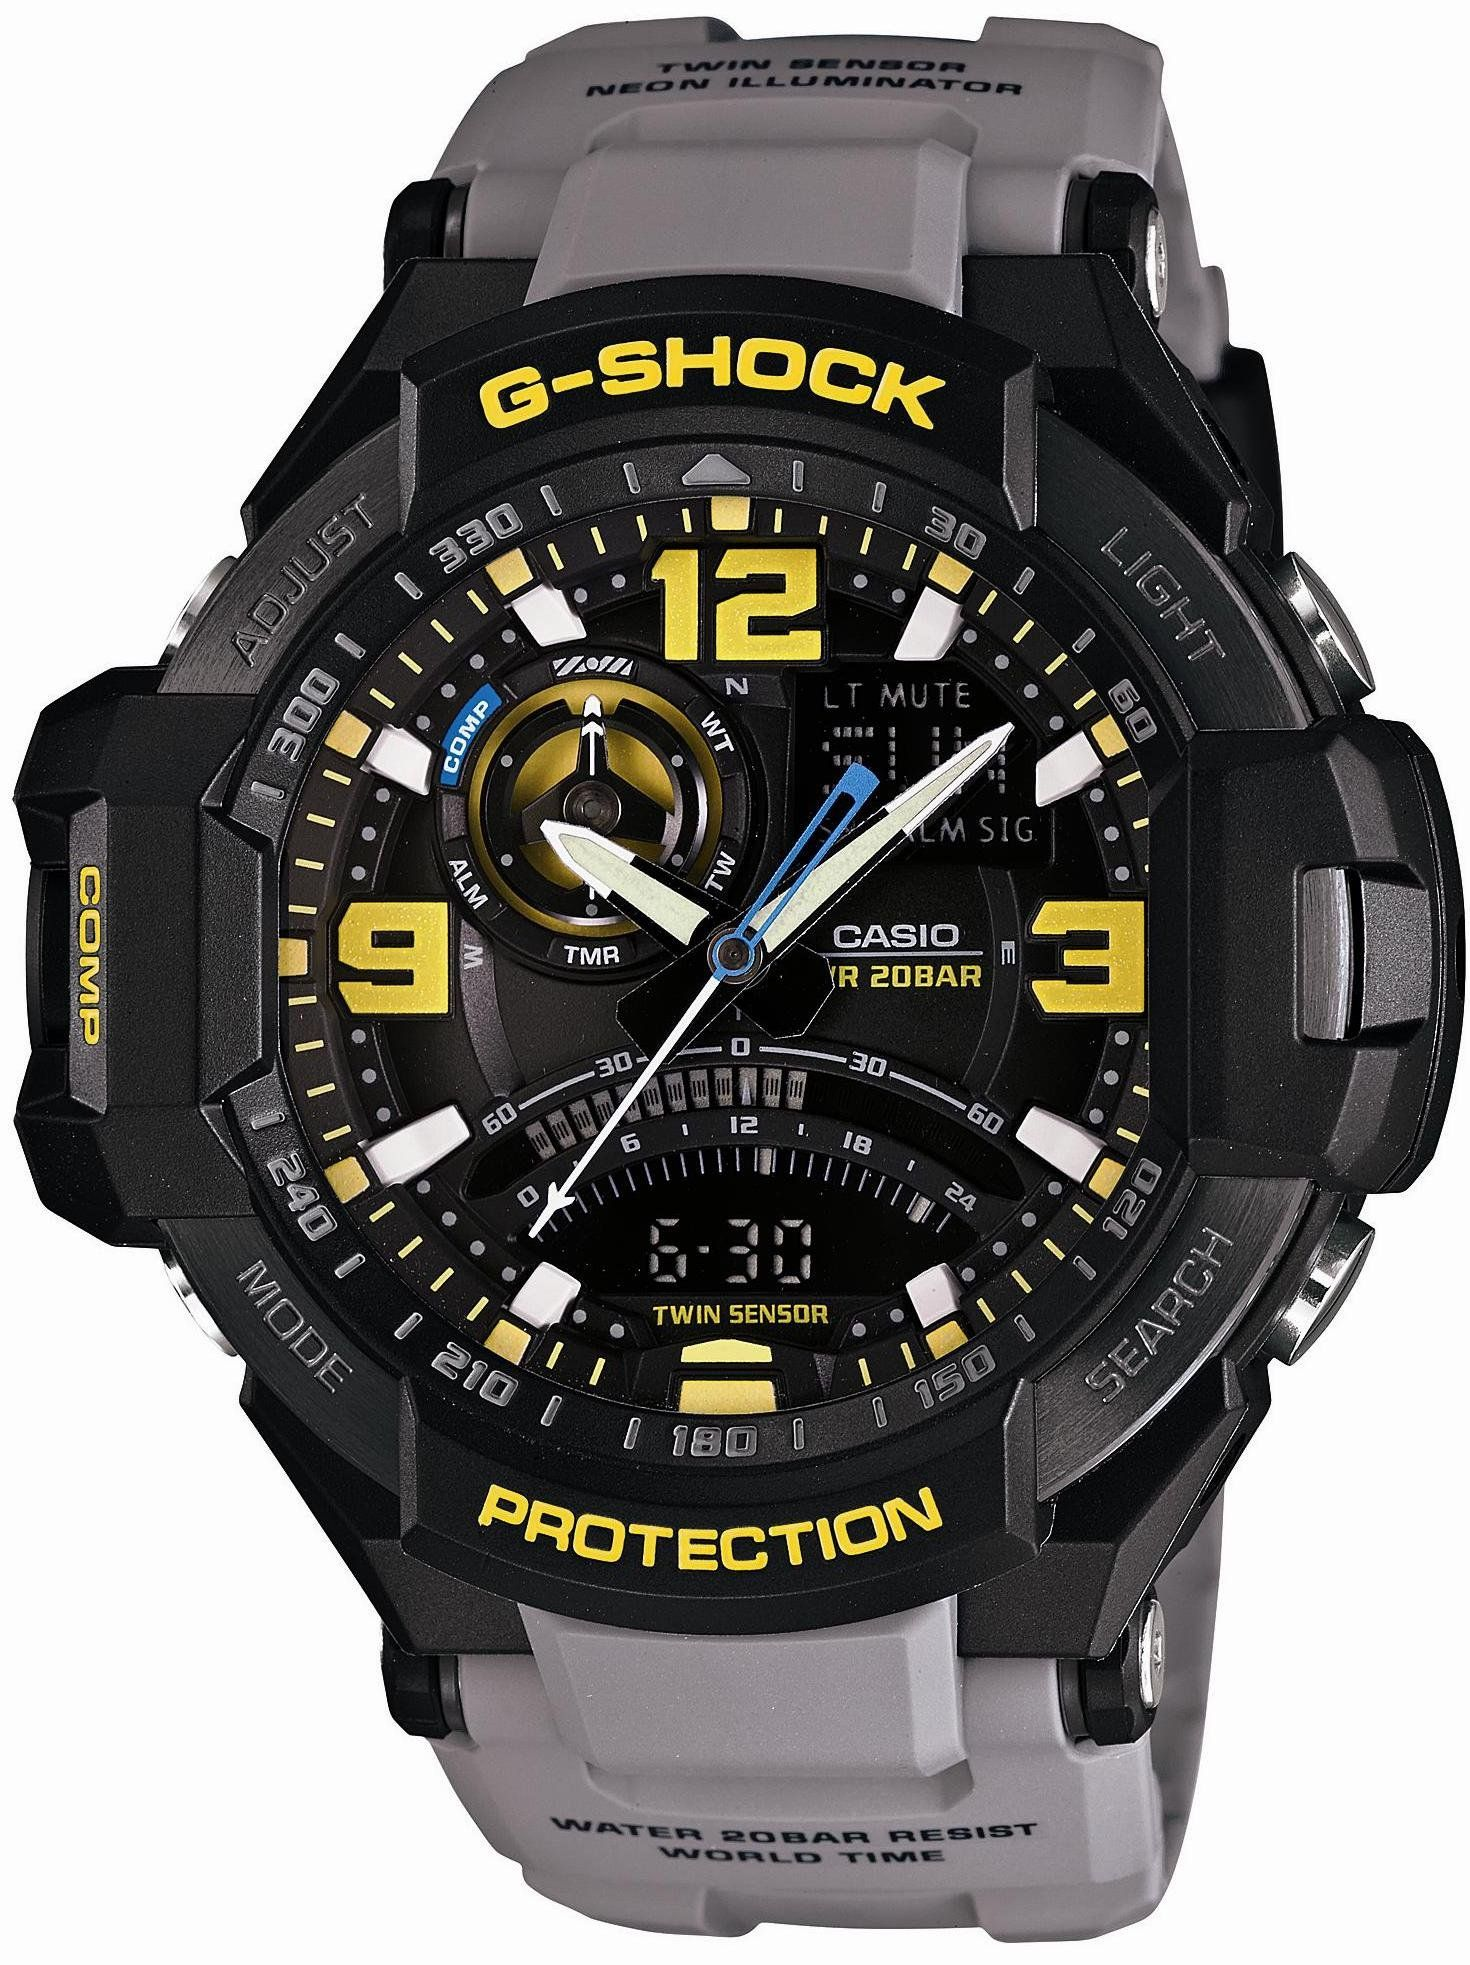 5b3202565c3 Casio G-SHOCK SKY COCKPIT Men s Watch GA-1000-8AJF (Japan Import). G-SHOCK  SKY COCKPIT Series. 20 Bar Water Proof. Compass   Thermometer. LED Light.